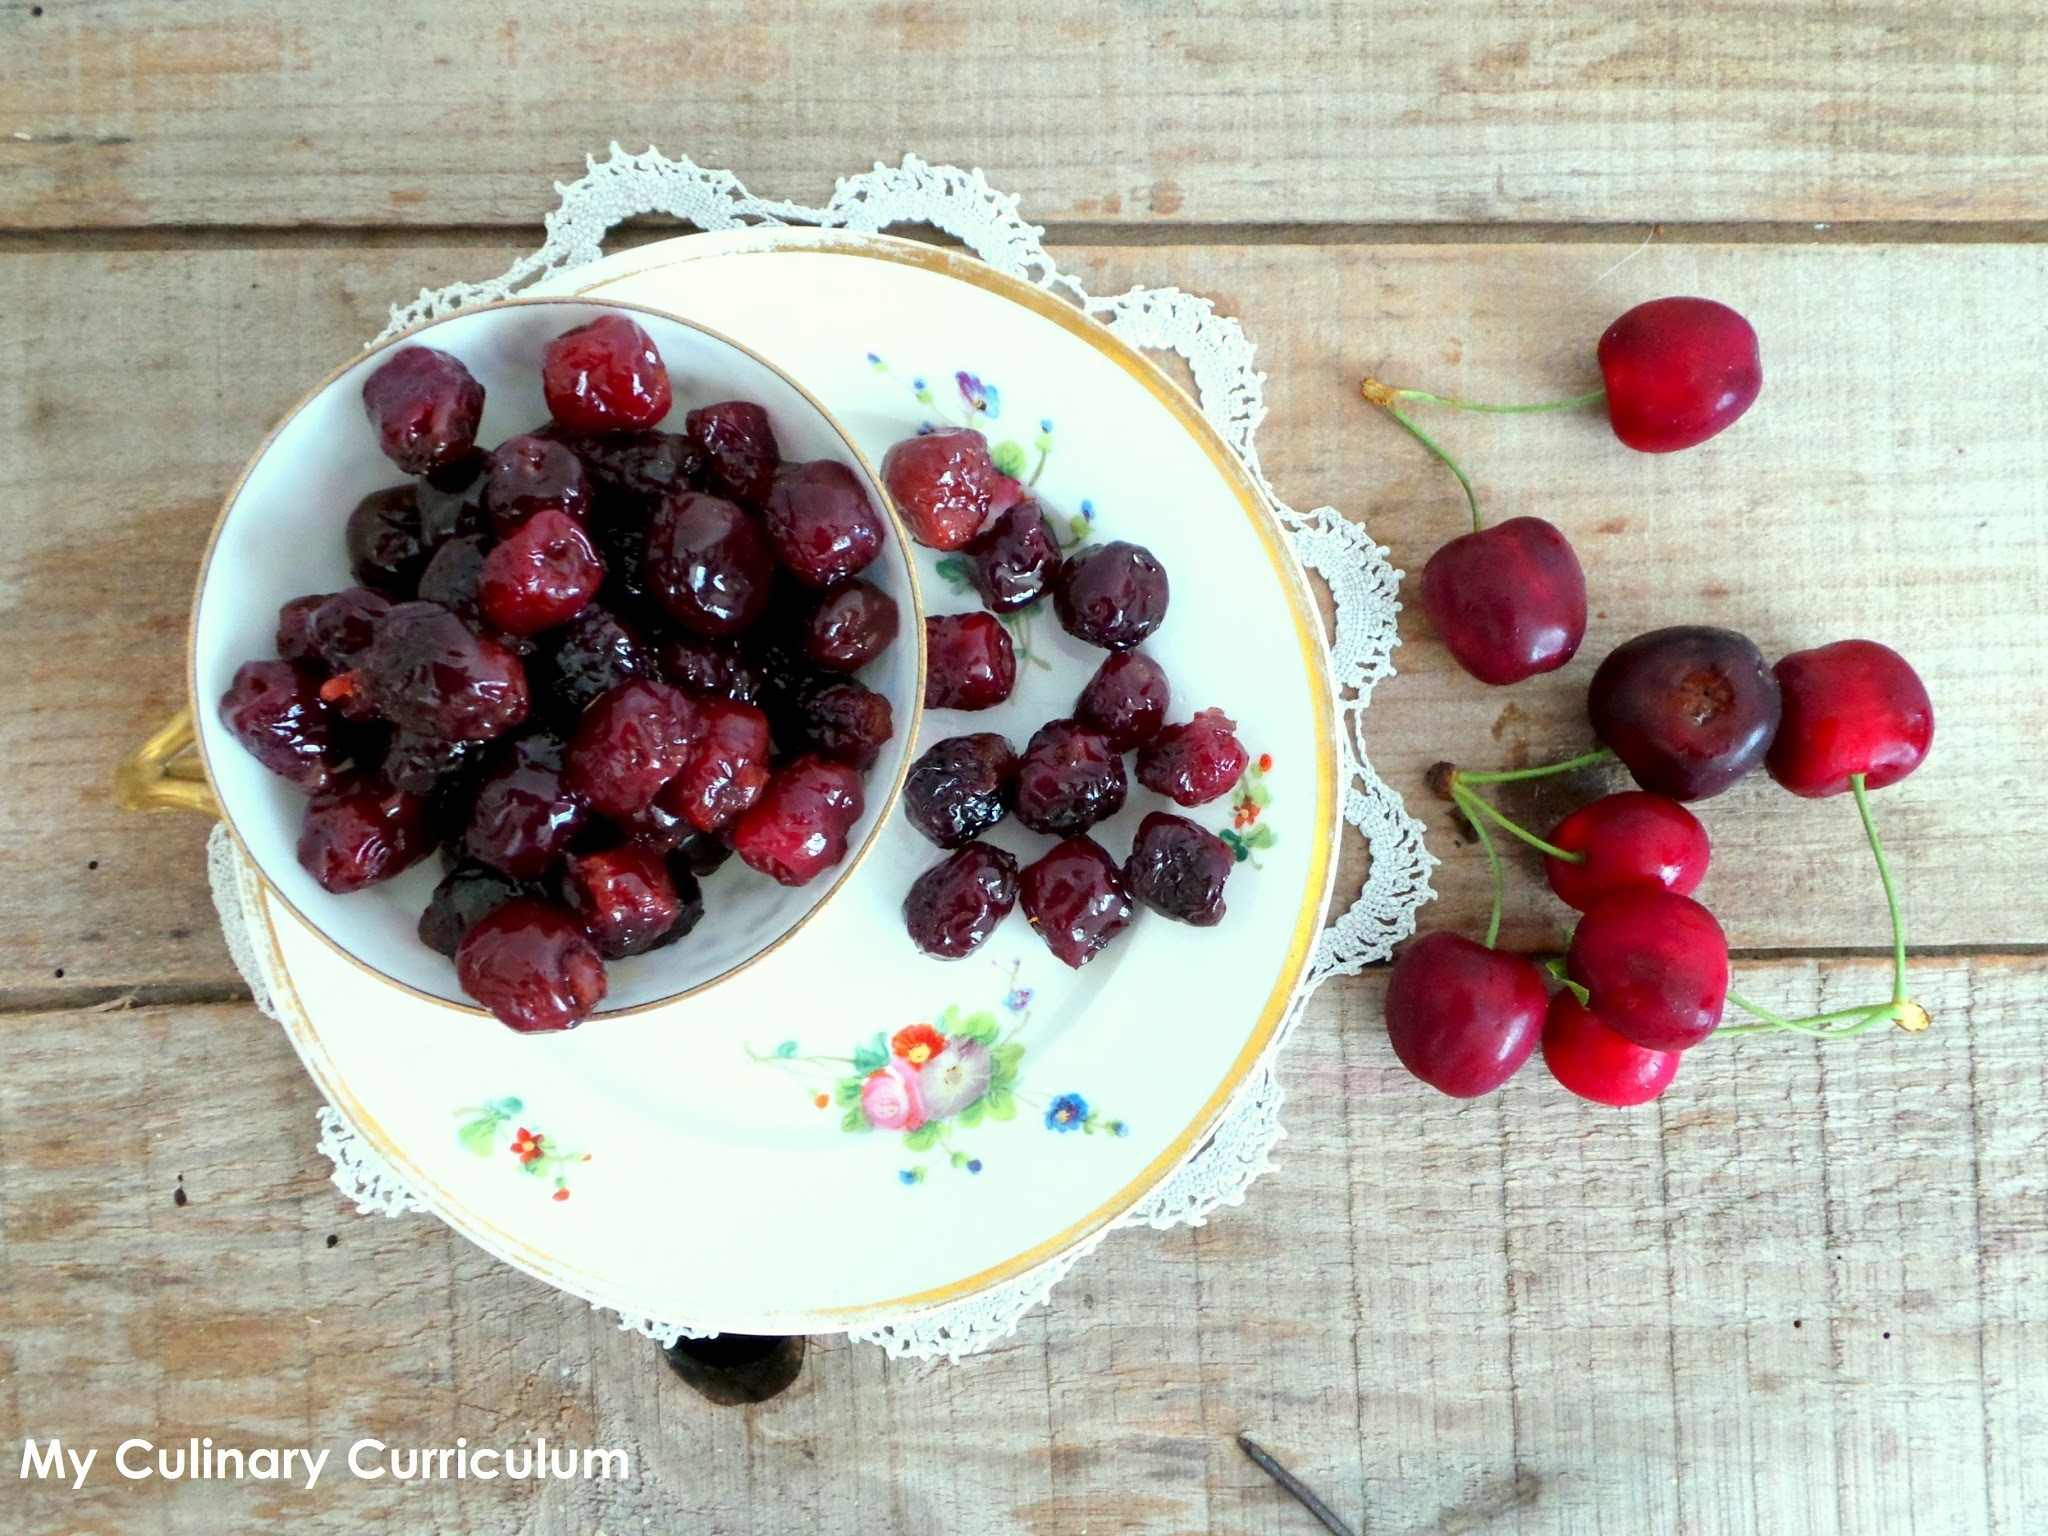 Cerises confites maison (Homemade candied cherries)